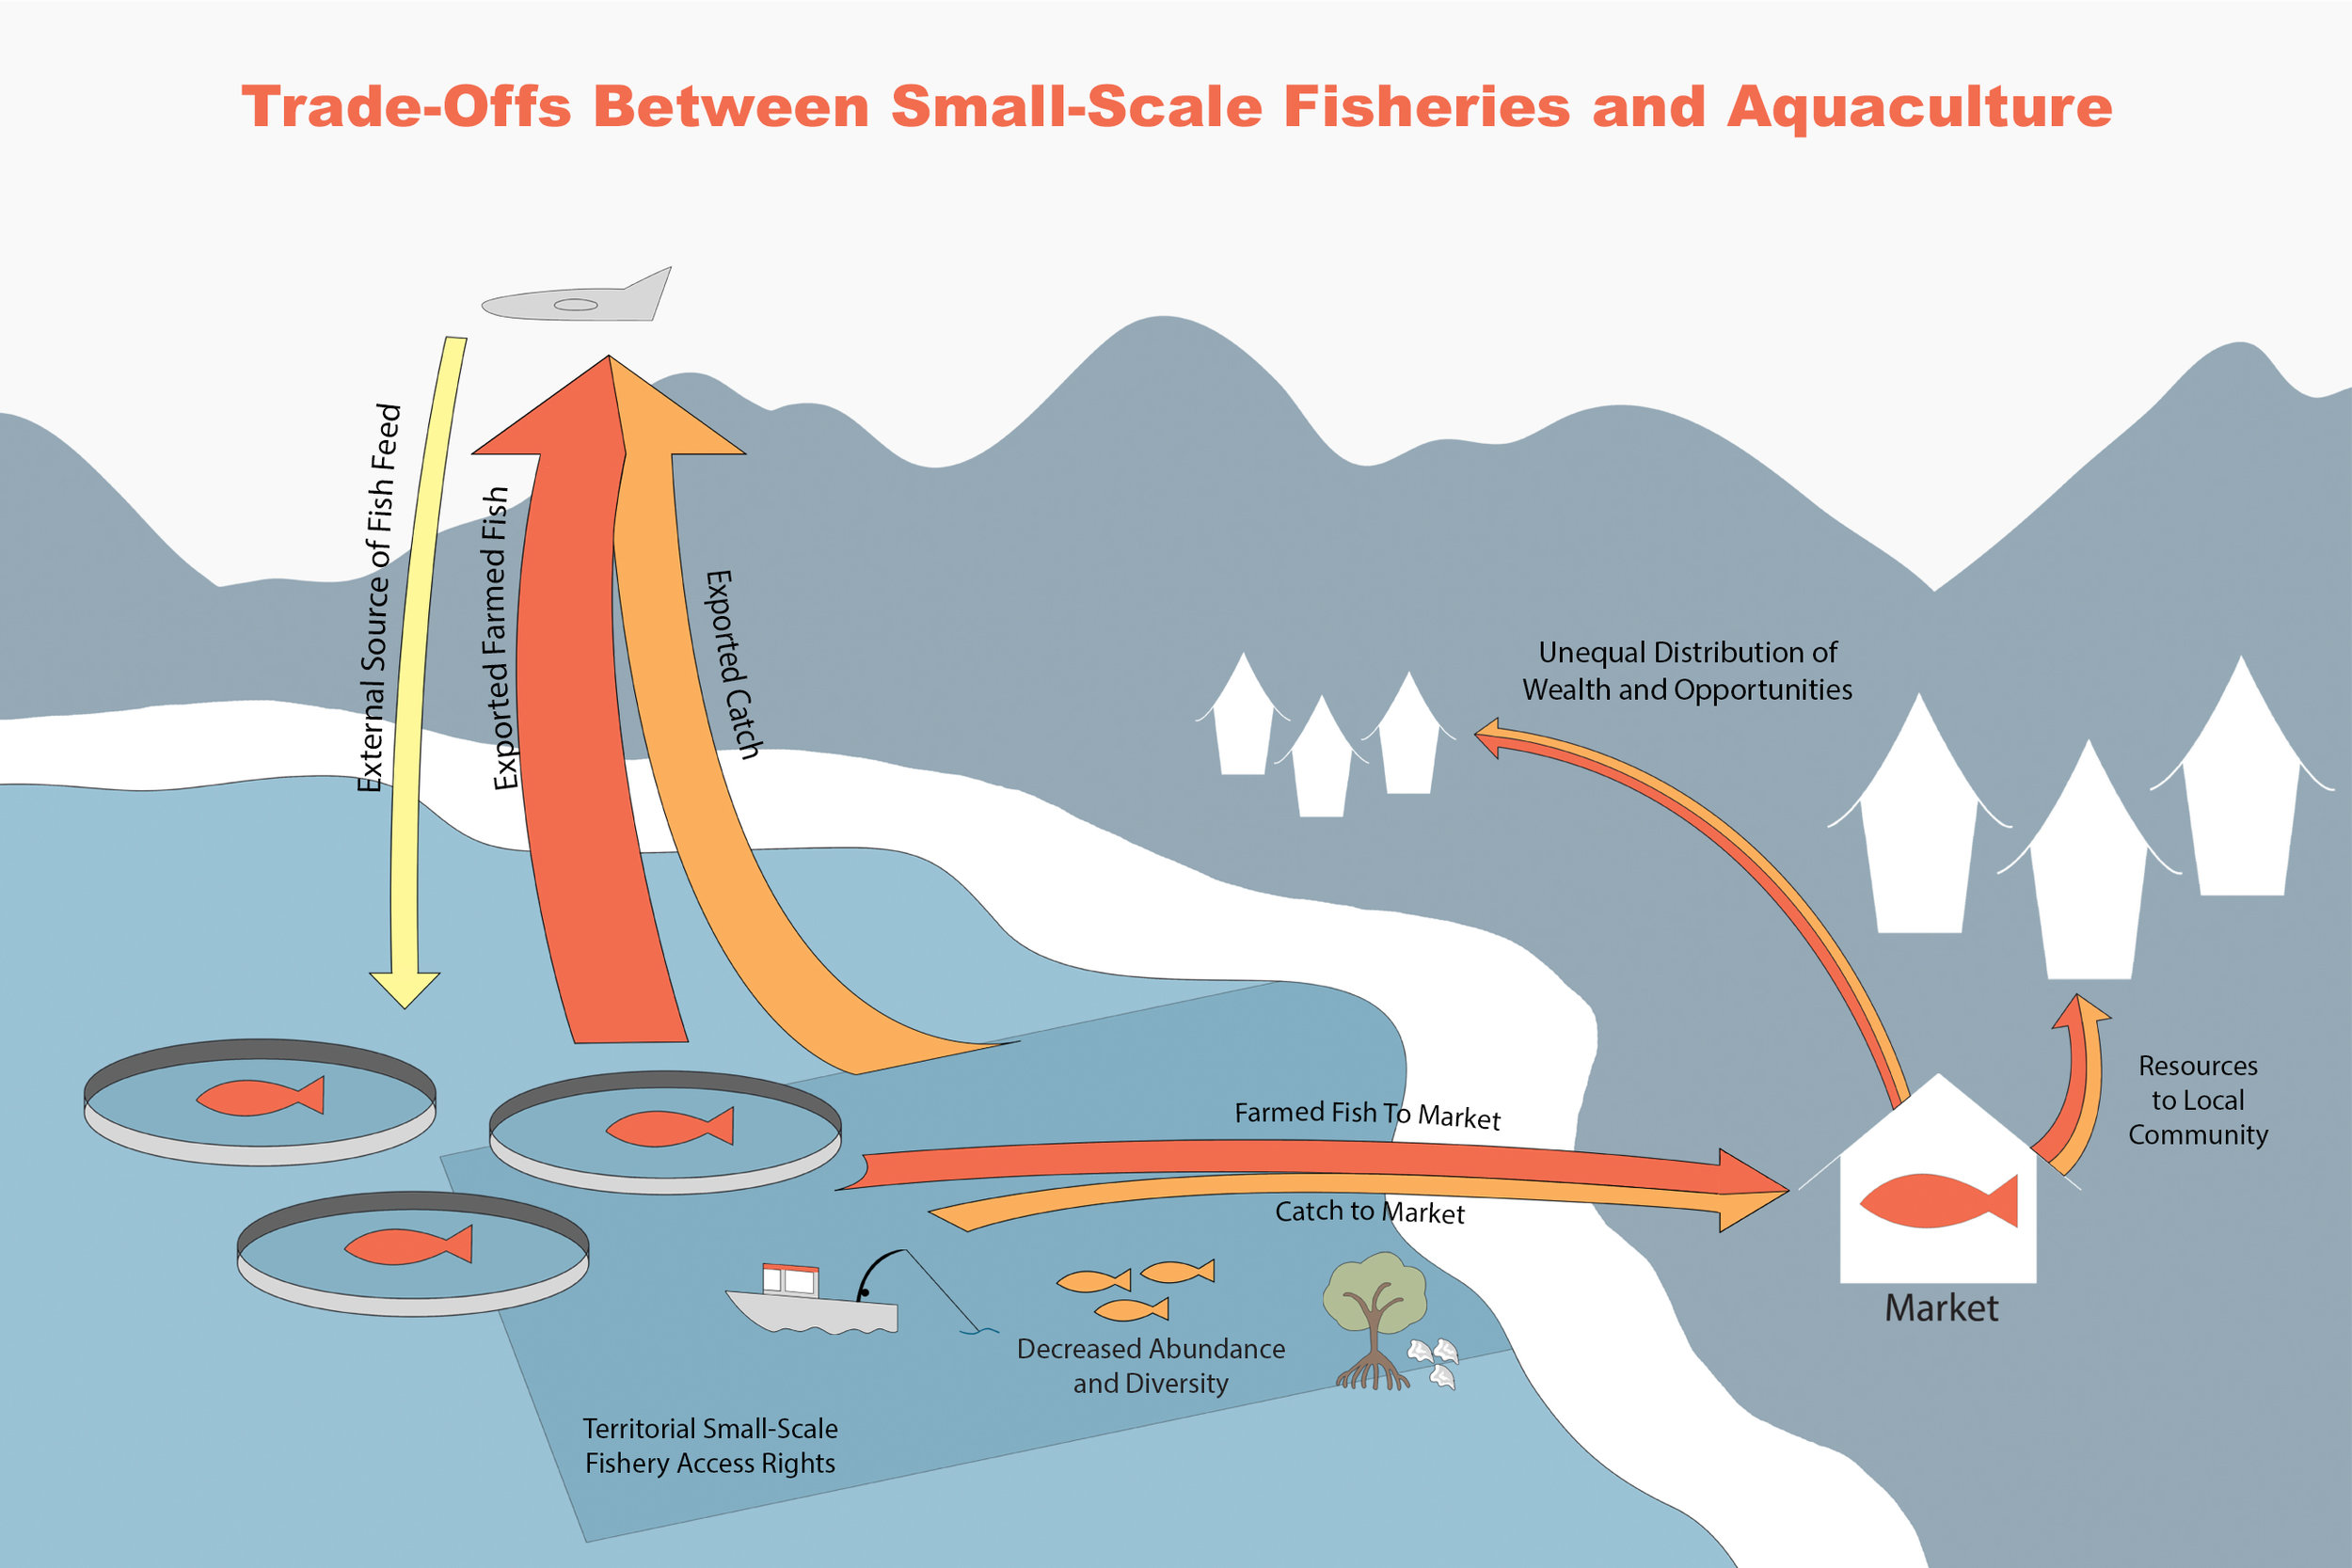 - This diagram was created to illustrate the trade-offs between small-scale fisheries and aquaculture systems when spatial rights, the supply chain, and risk management assessments are not prioritized.